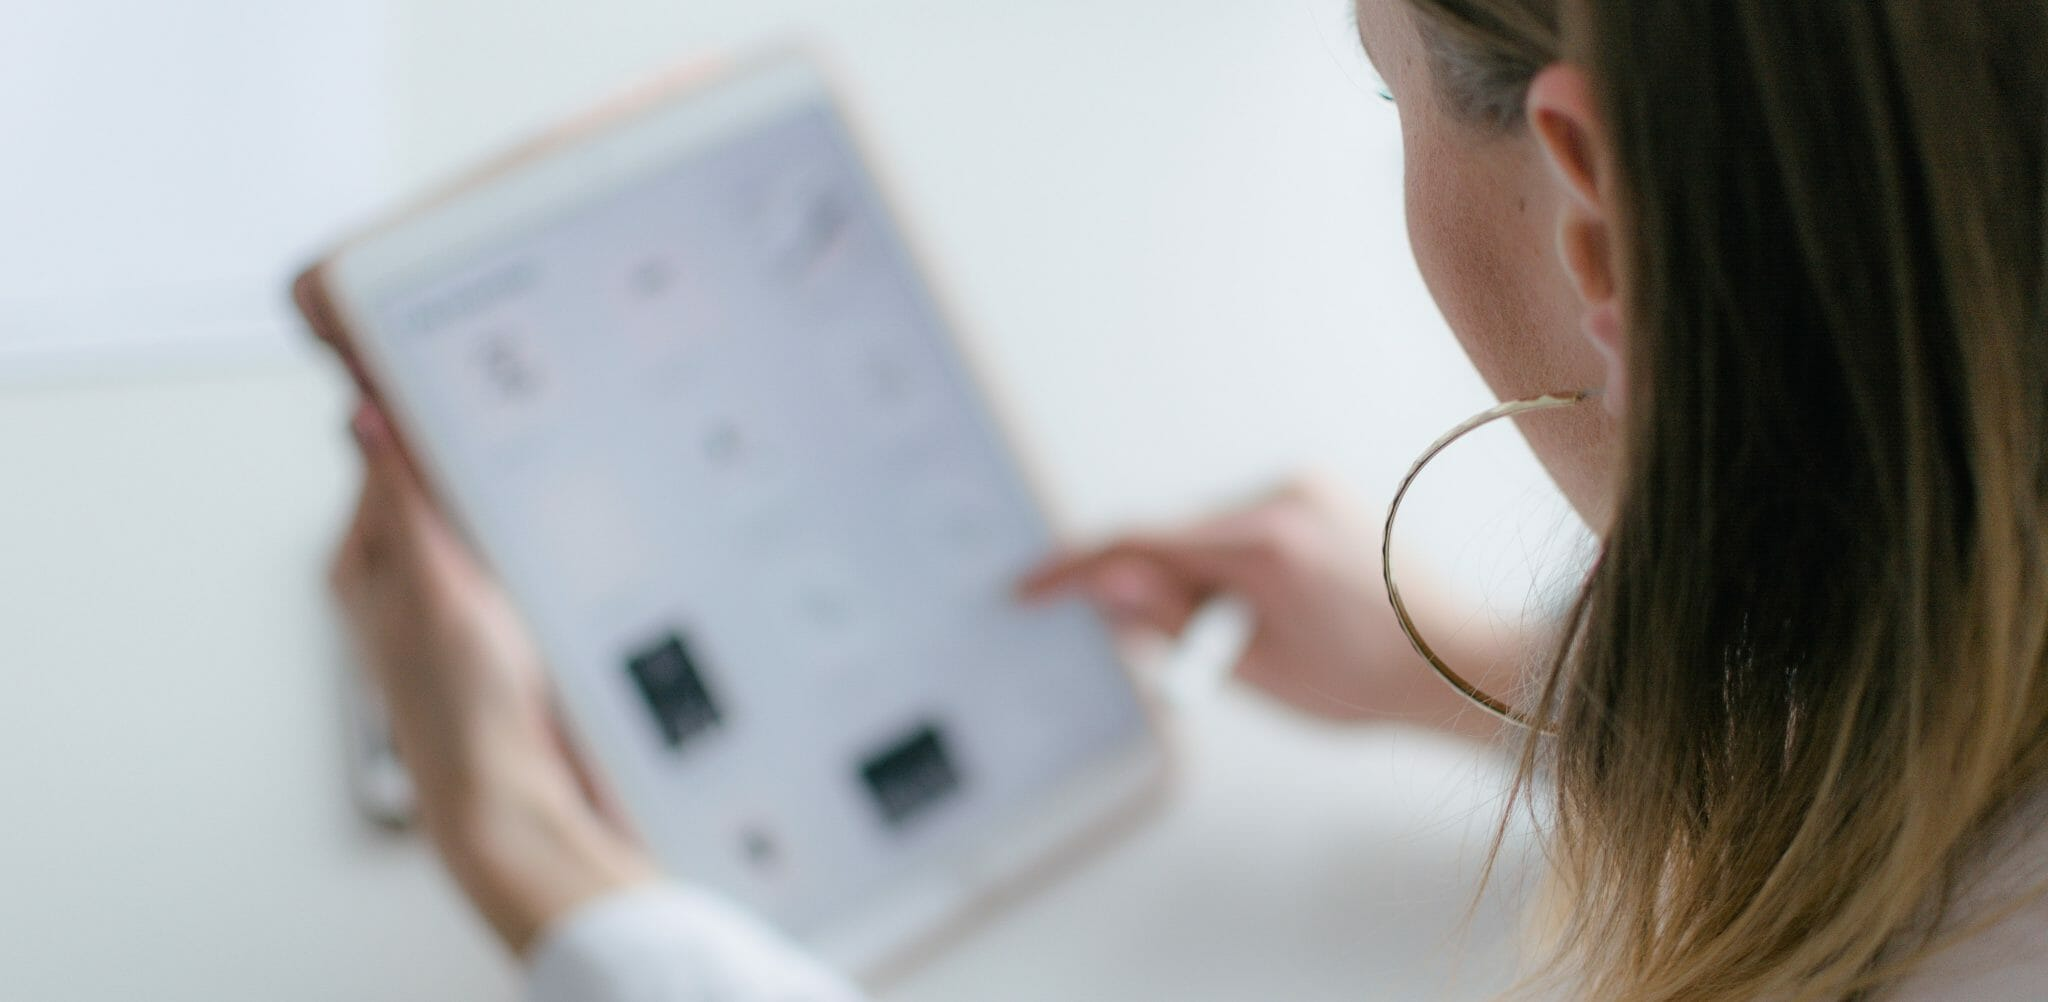 Photo shot looking a girls shoulder, her hair and silver hoop earring and profile of the left side of her face can be seen. She is using a tablet, assuming for a platform, but the focus is on her so the tablet is blurred.